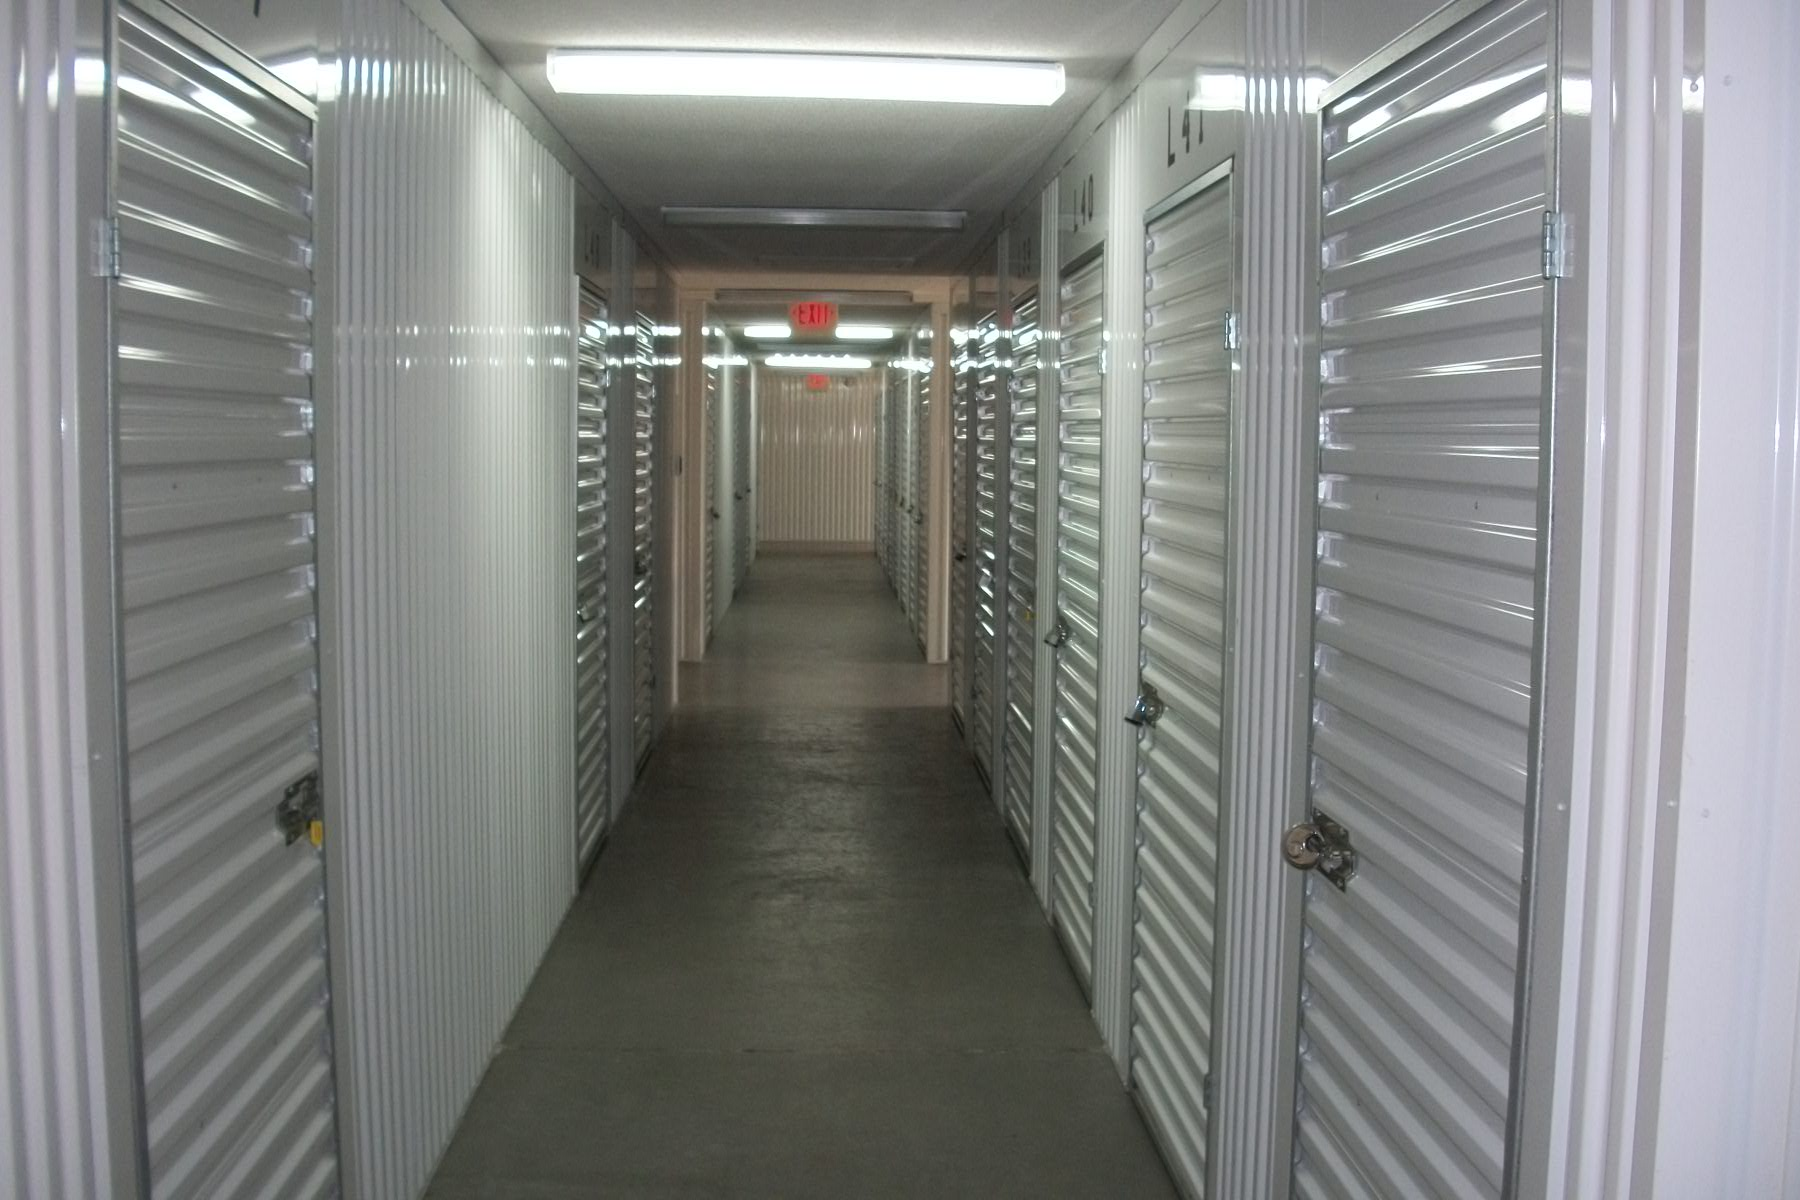 inside hallway doors locked Security Self Storage